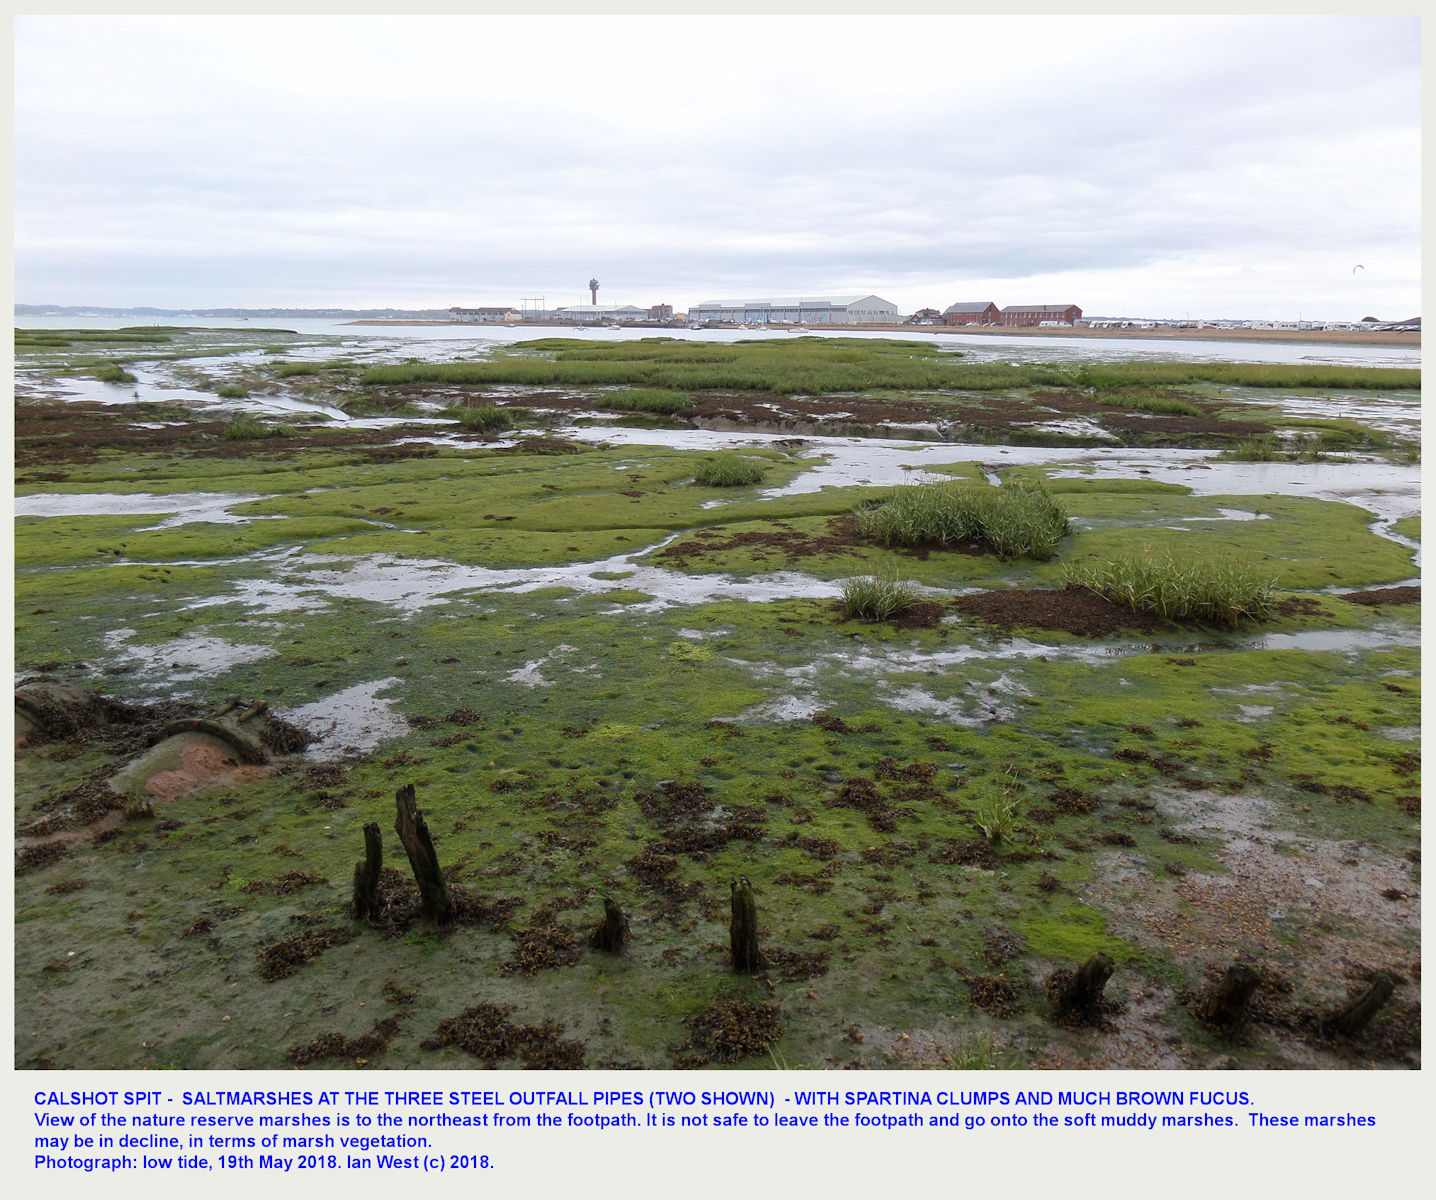 Saltmarshes with Spartina and Fucus at the Southampton Water side of Calshot Spit, as seen from the footpath near three old, outfall pipes, 12th August 2018